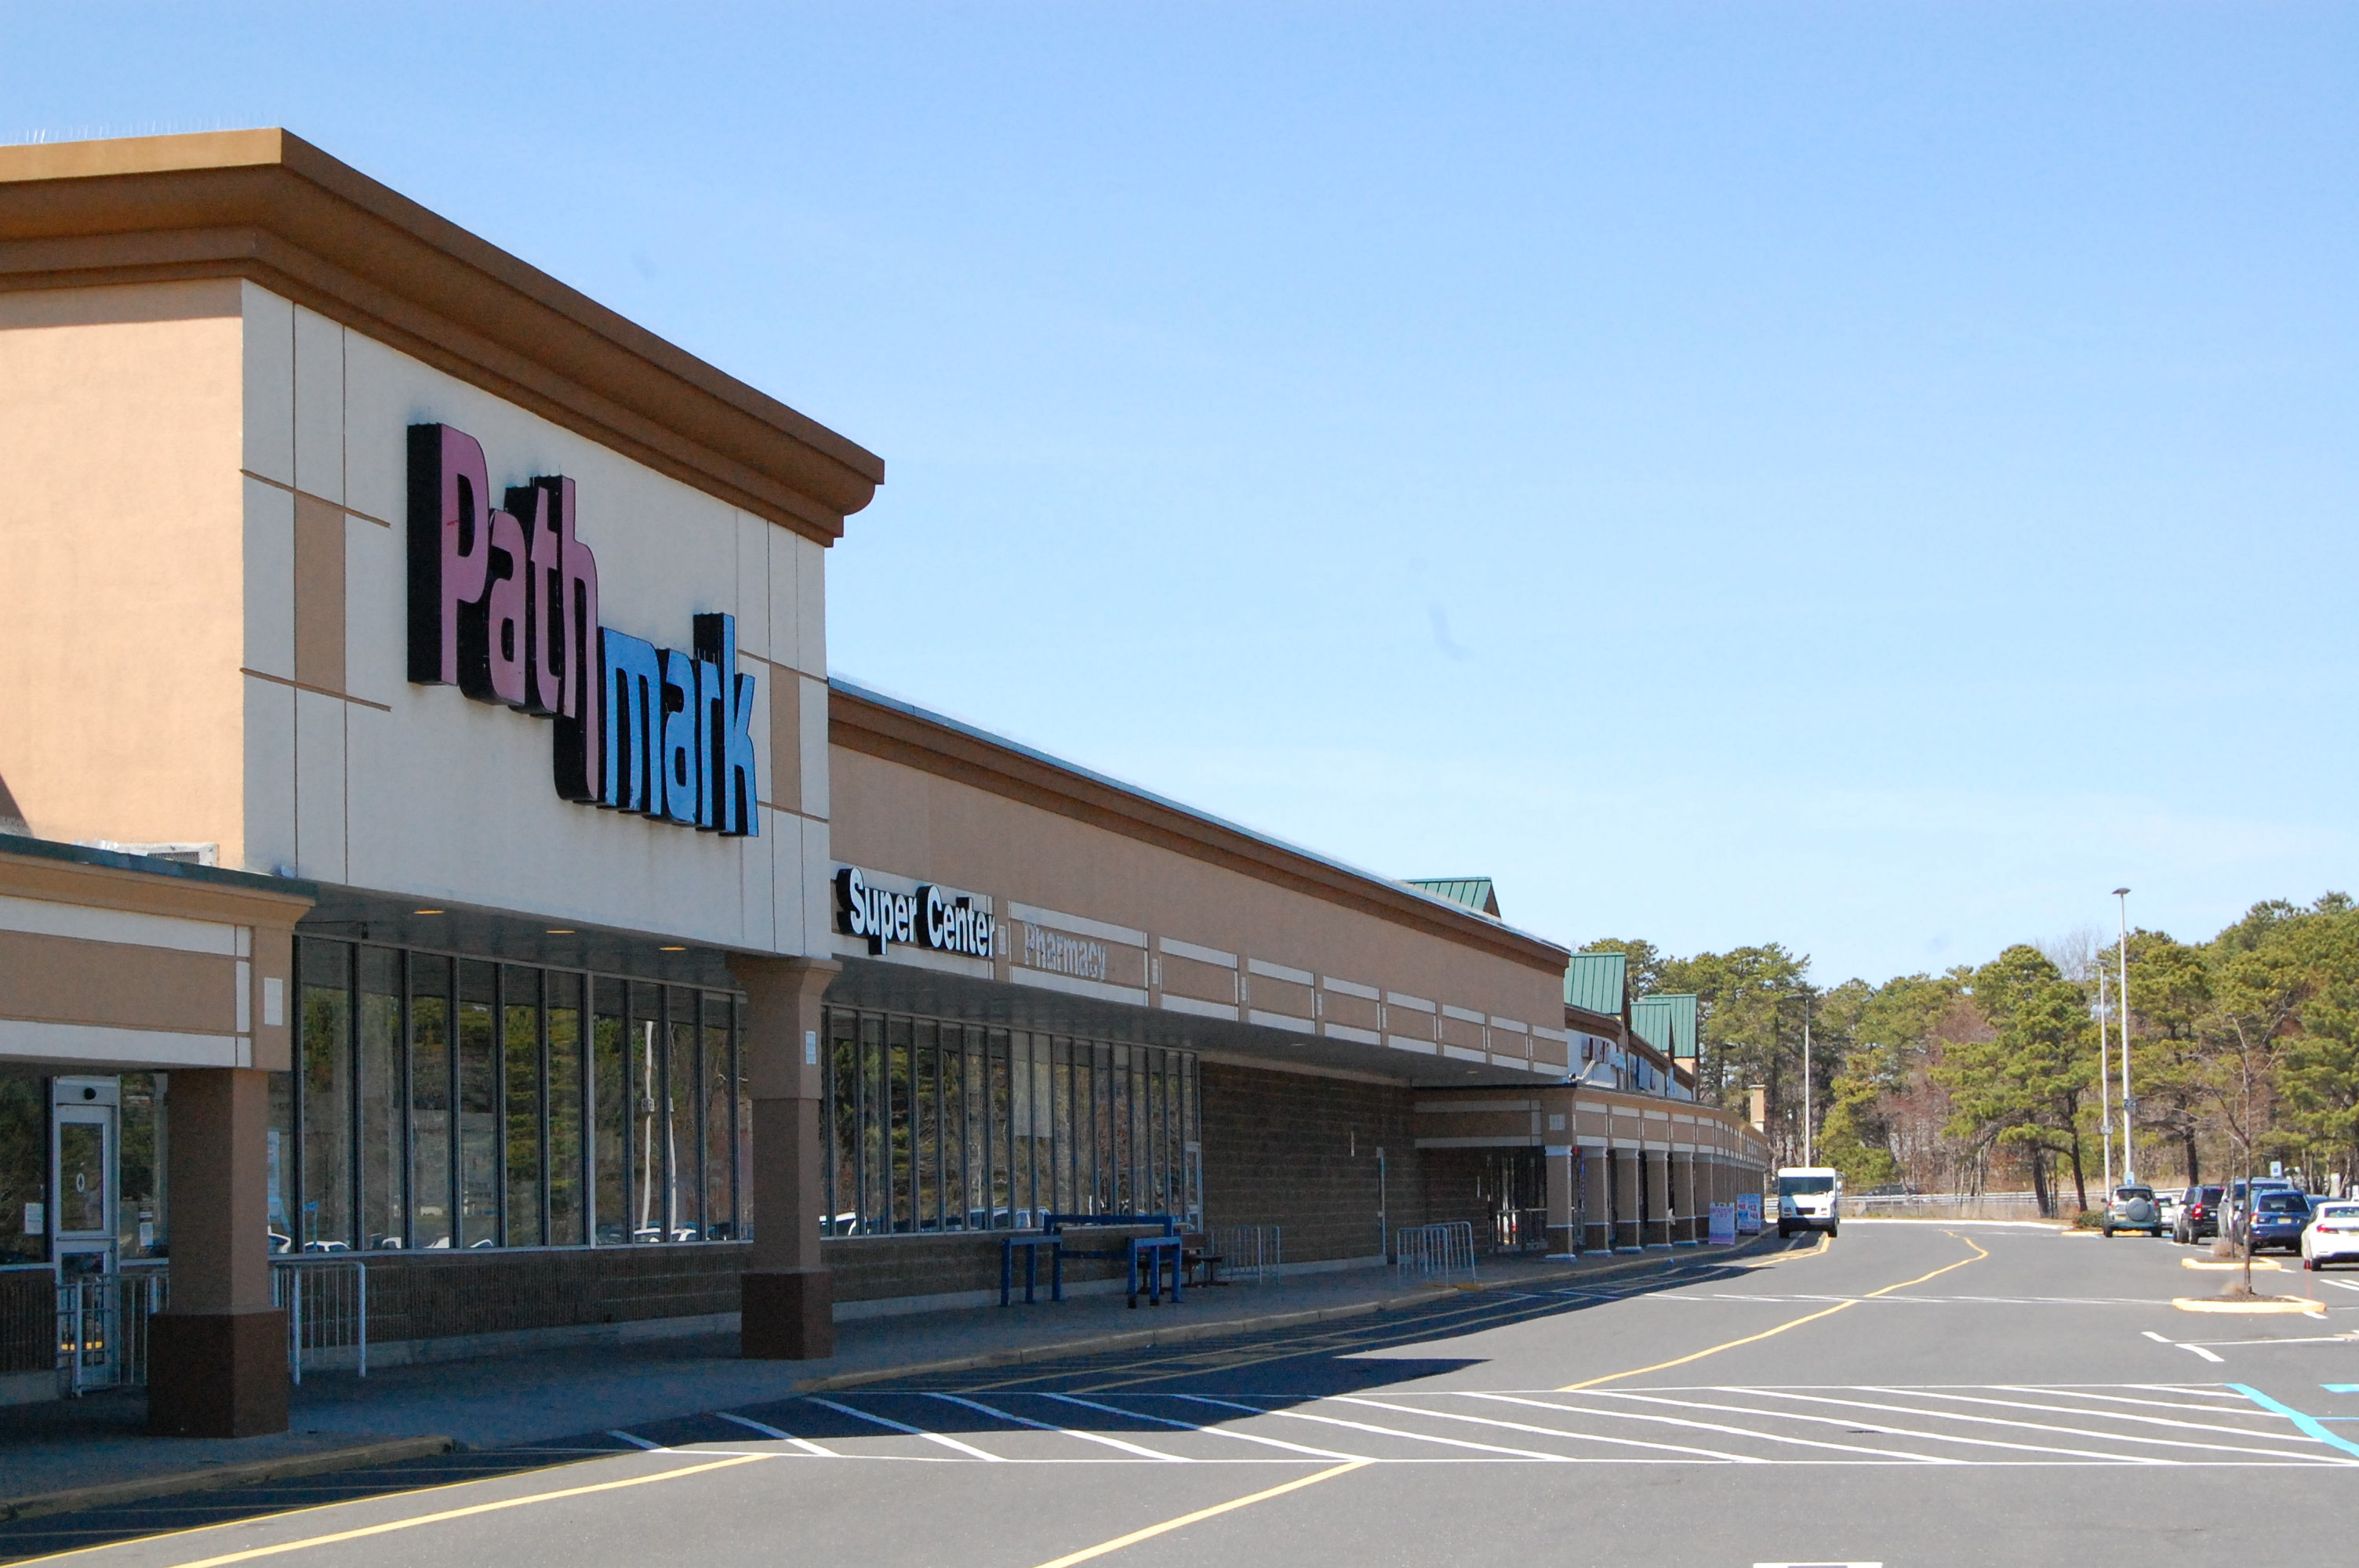 The now-shuttered Pathmark supermarket in Brick's Laurel Square shopping center. (Photo: Daniel Nee)